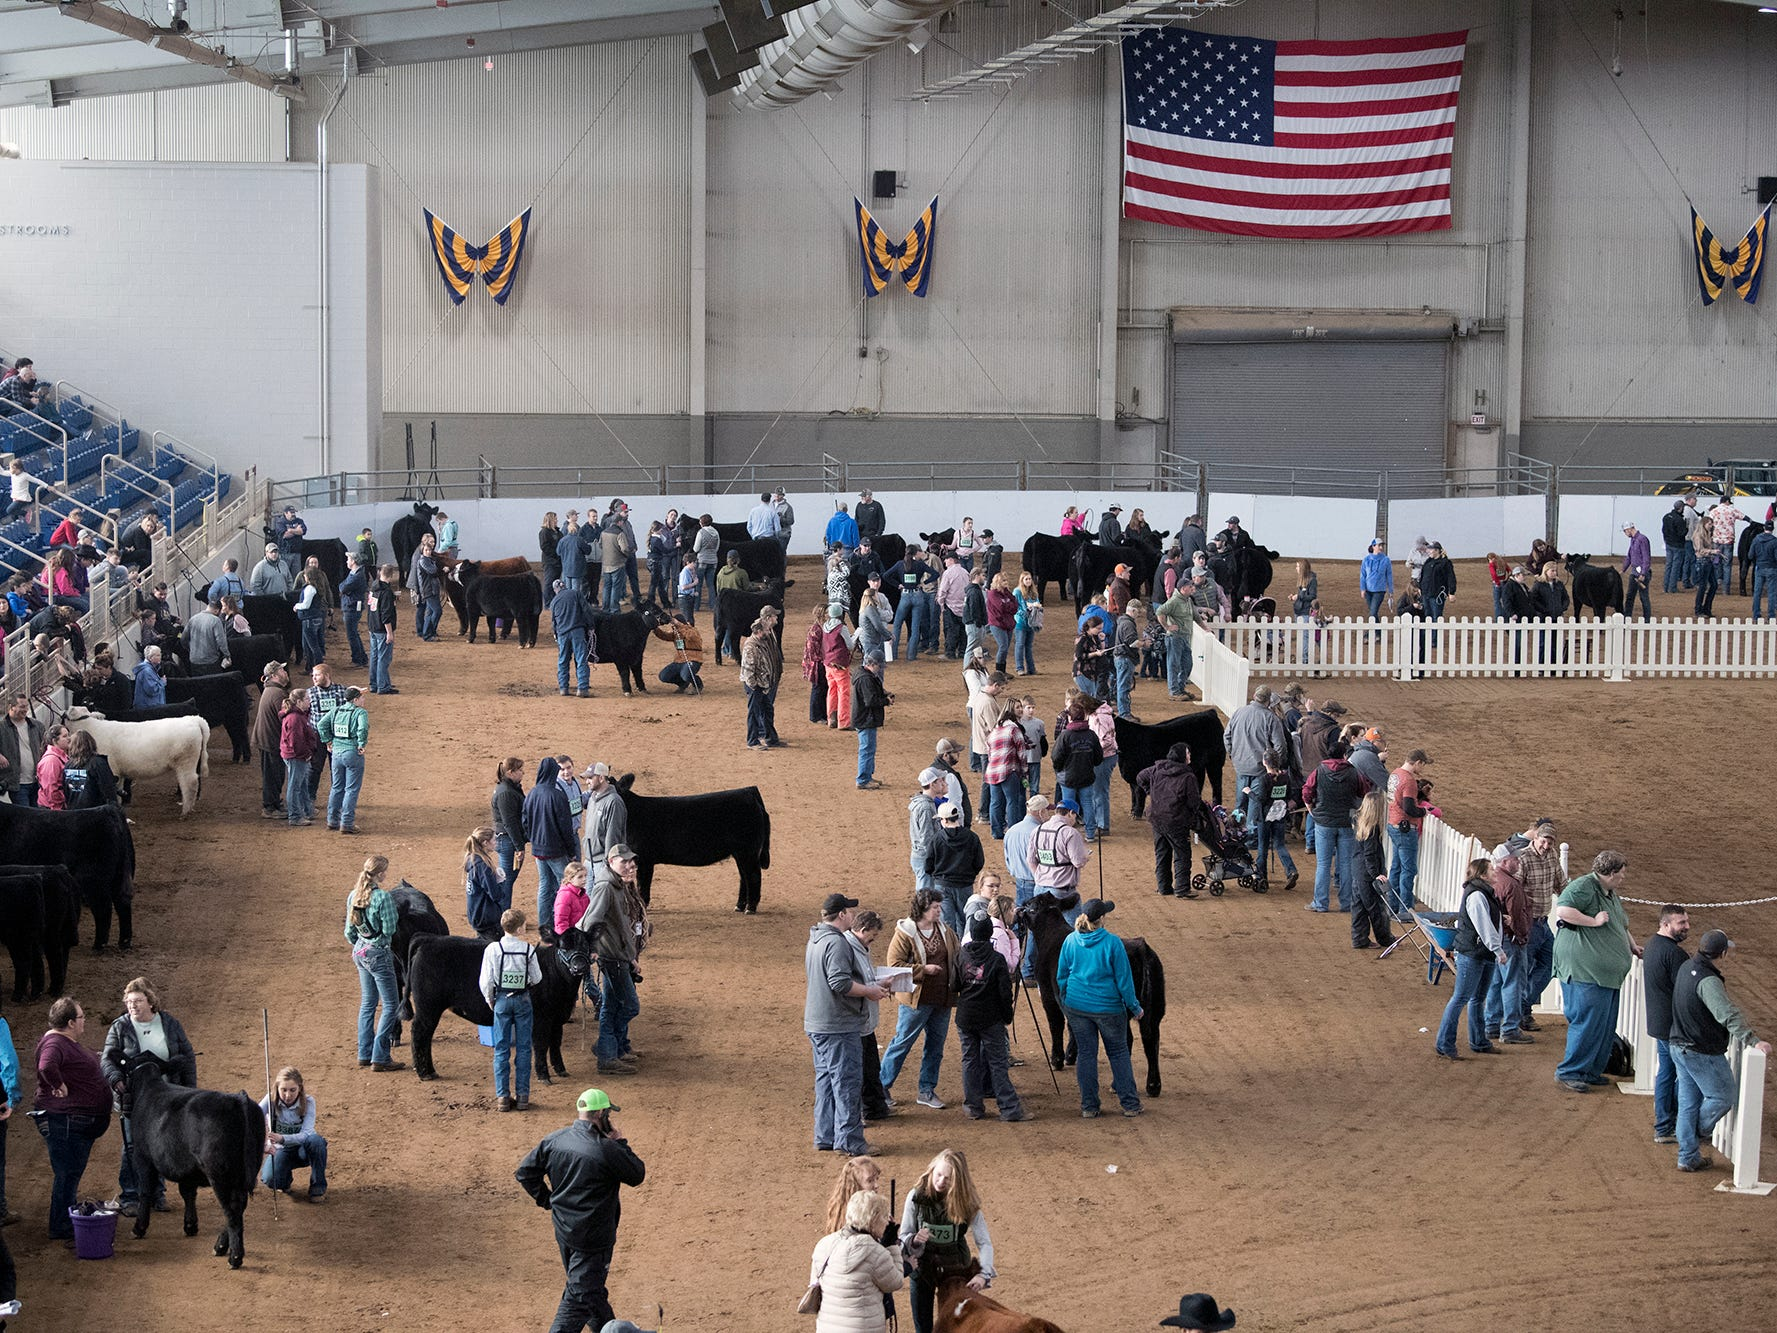 Cattle prep for judging inside The Equine Arena during The 103rd Pennsylvania Farm Show in Harrisburg Sunday January 6, 2019.